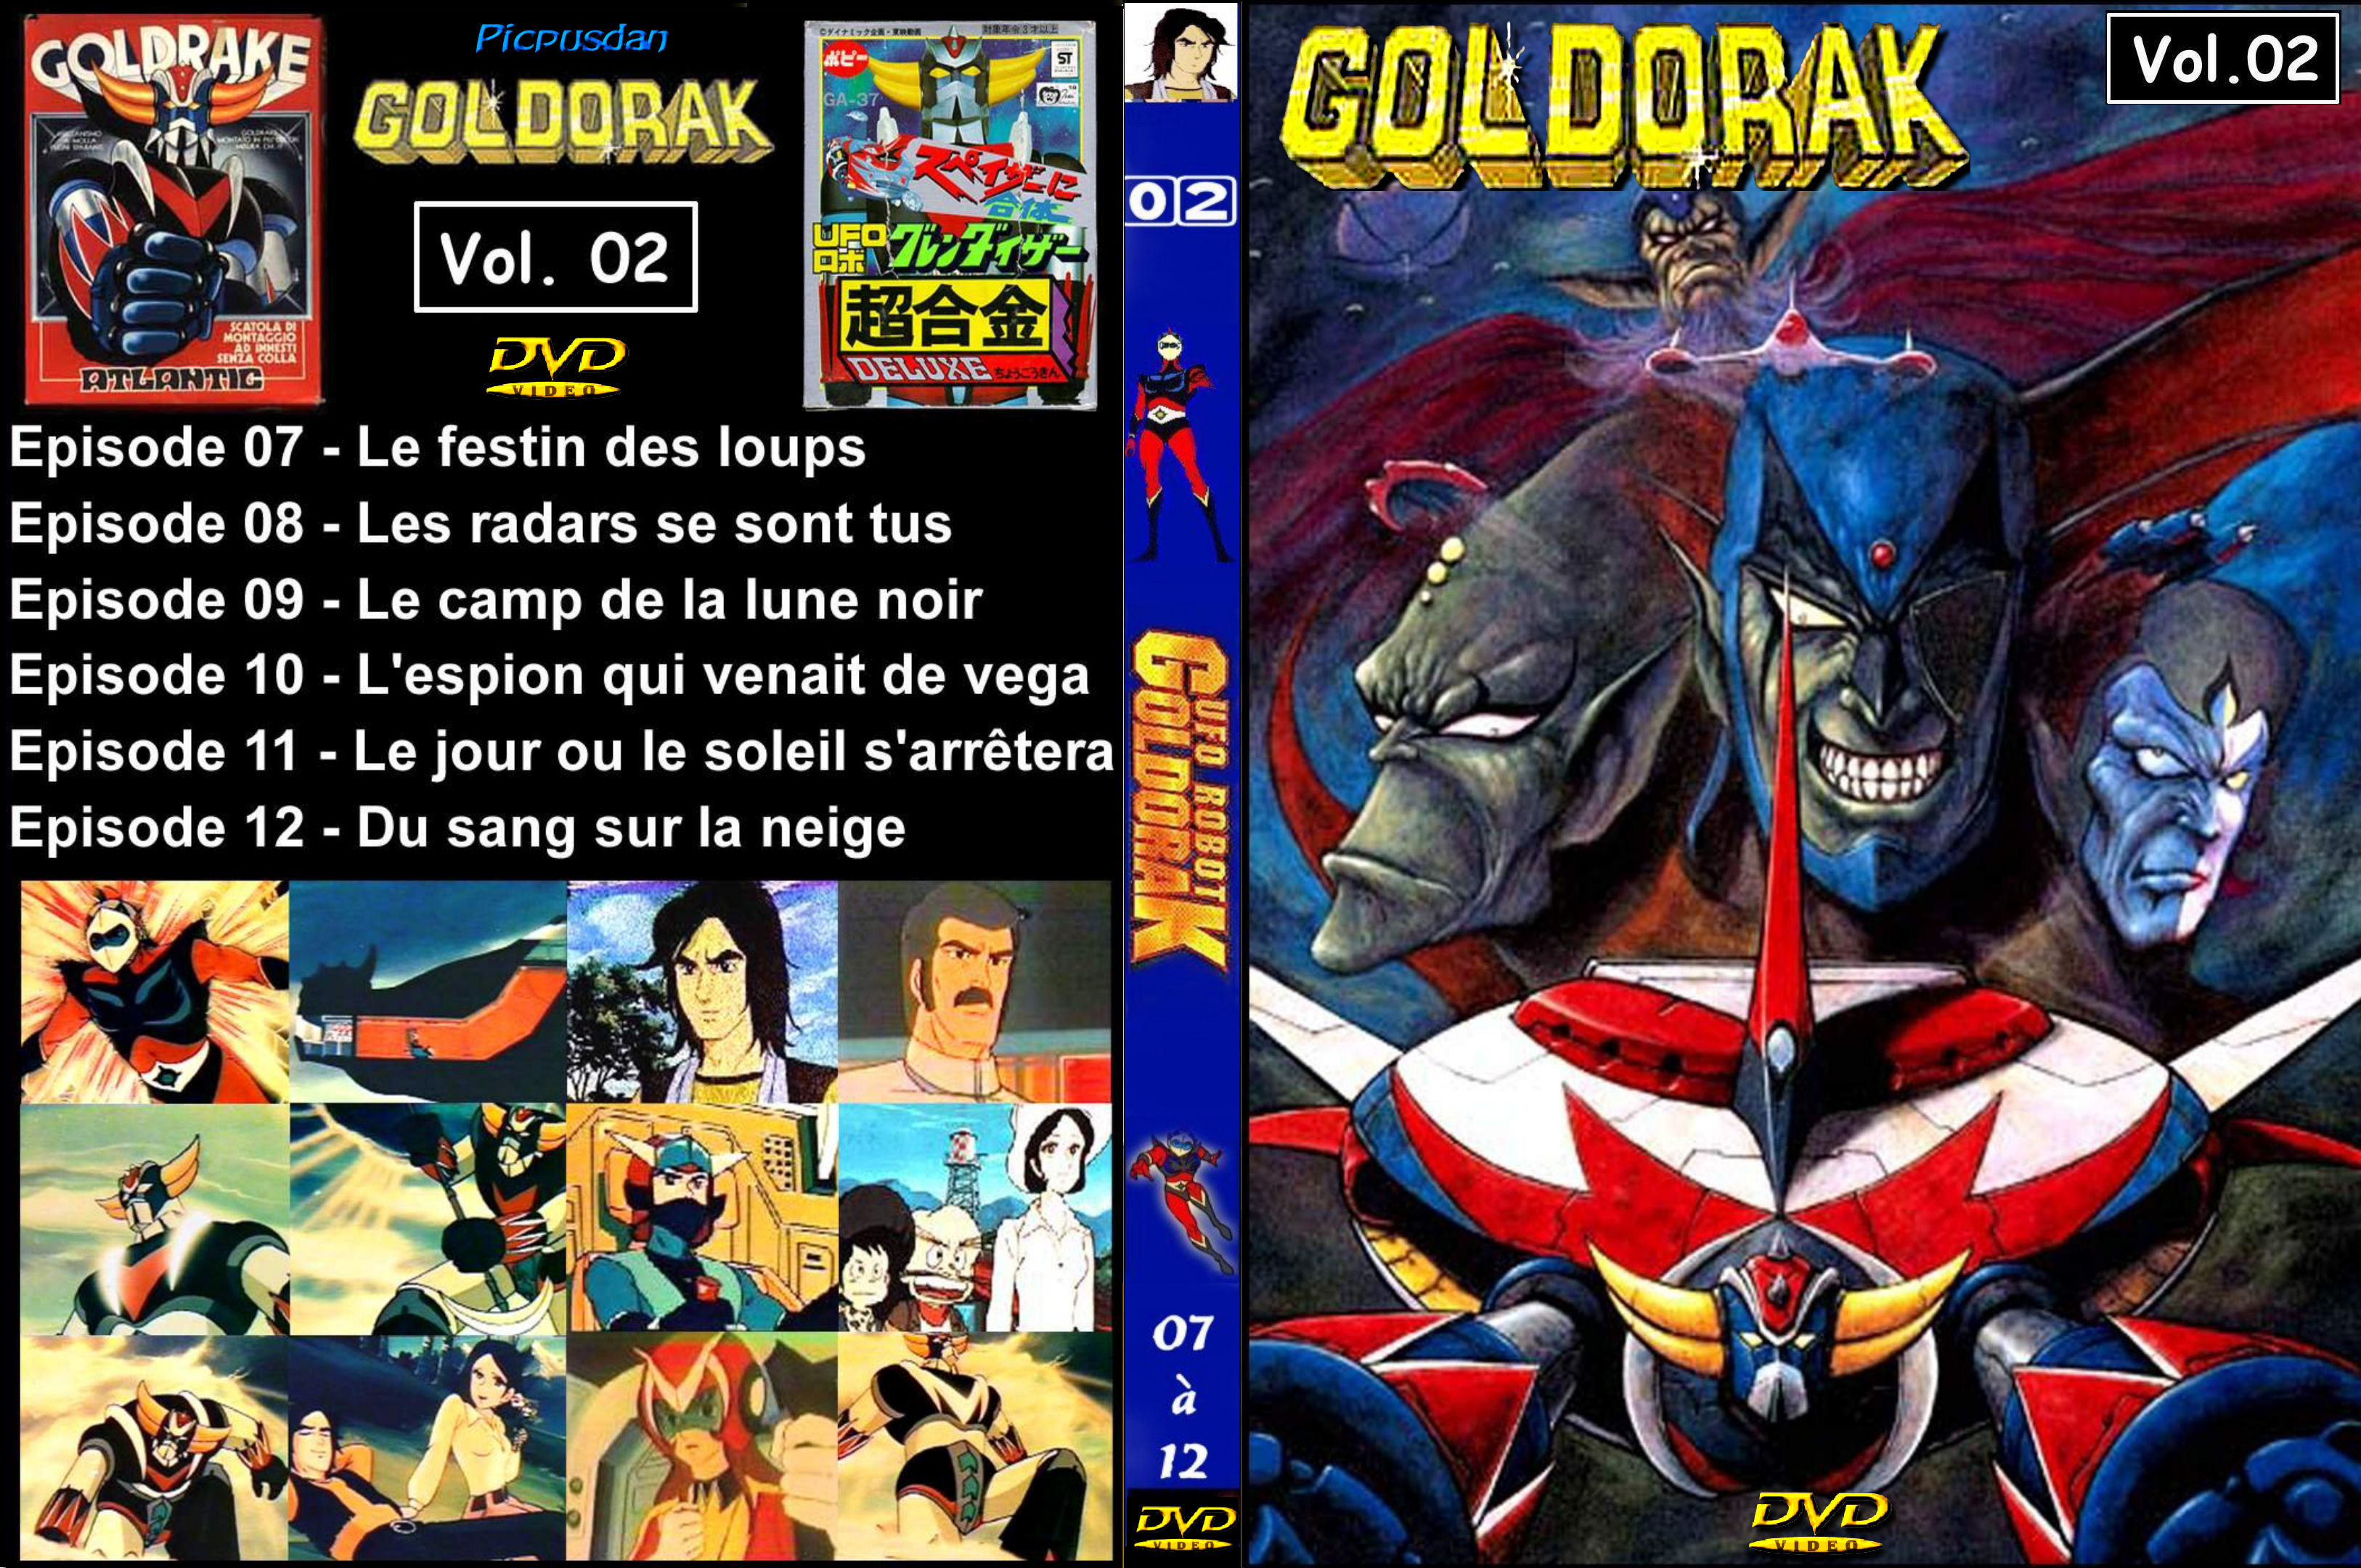 goldorak episode 10